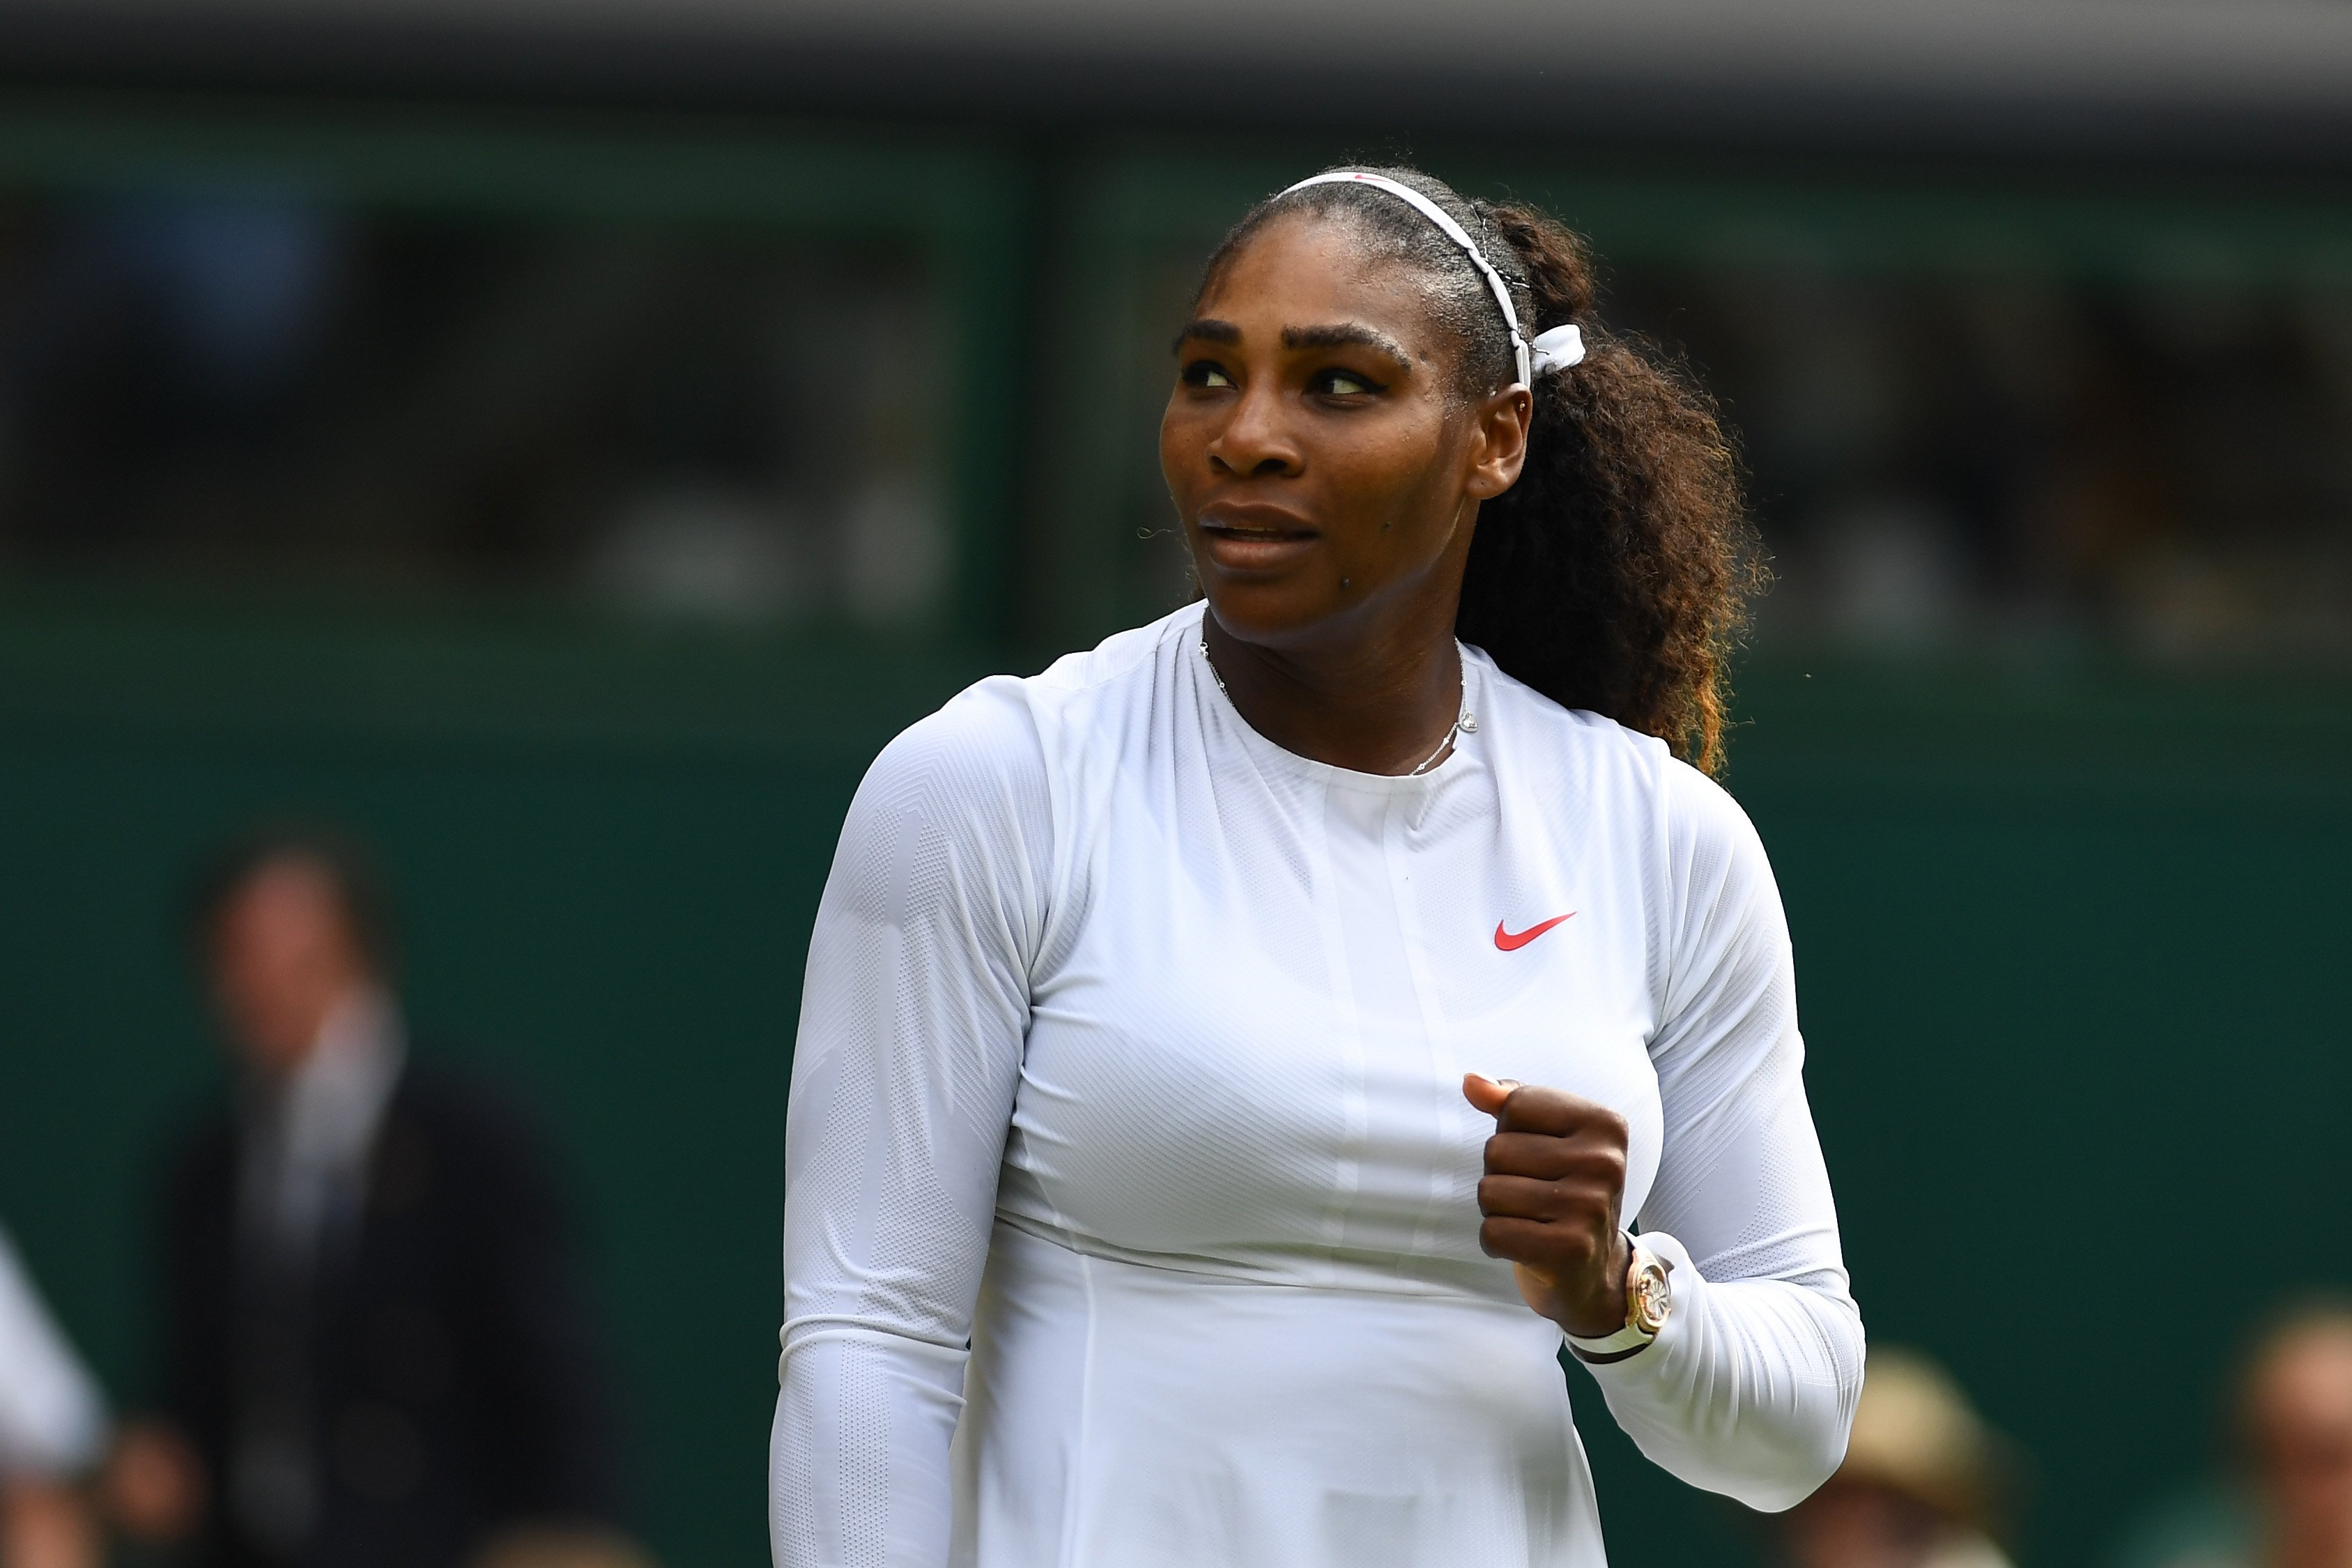 Serena Williams on day seven of the Wimbledon Lawn Tennis Championships on July 9, 2018 in London, England| Photo: Getty Images